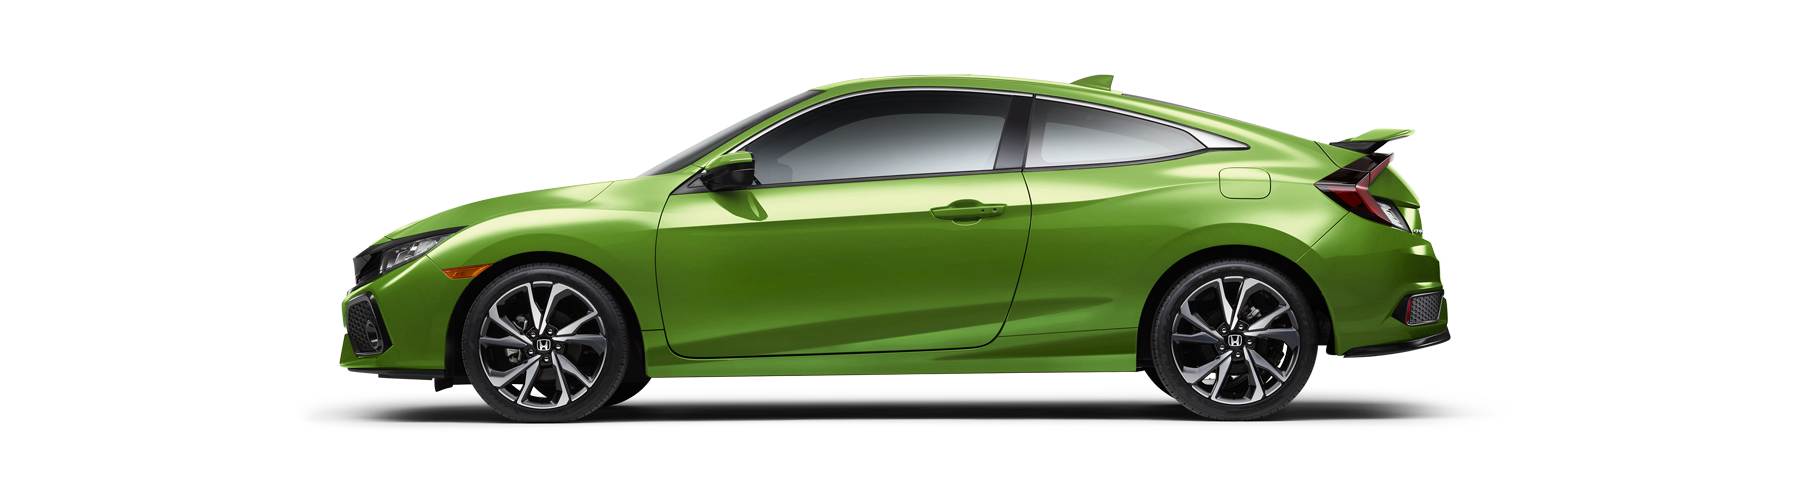 2017 Honda Civic Si Coupe Side Profile